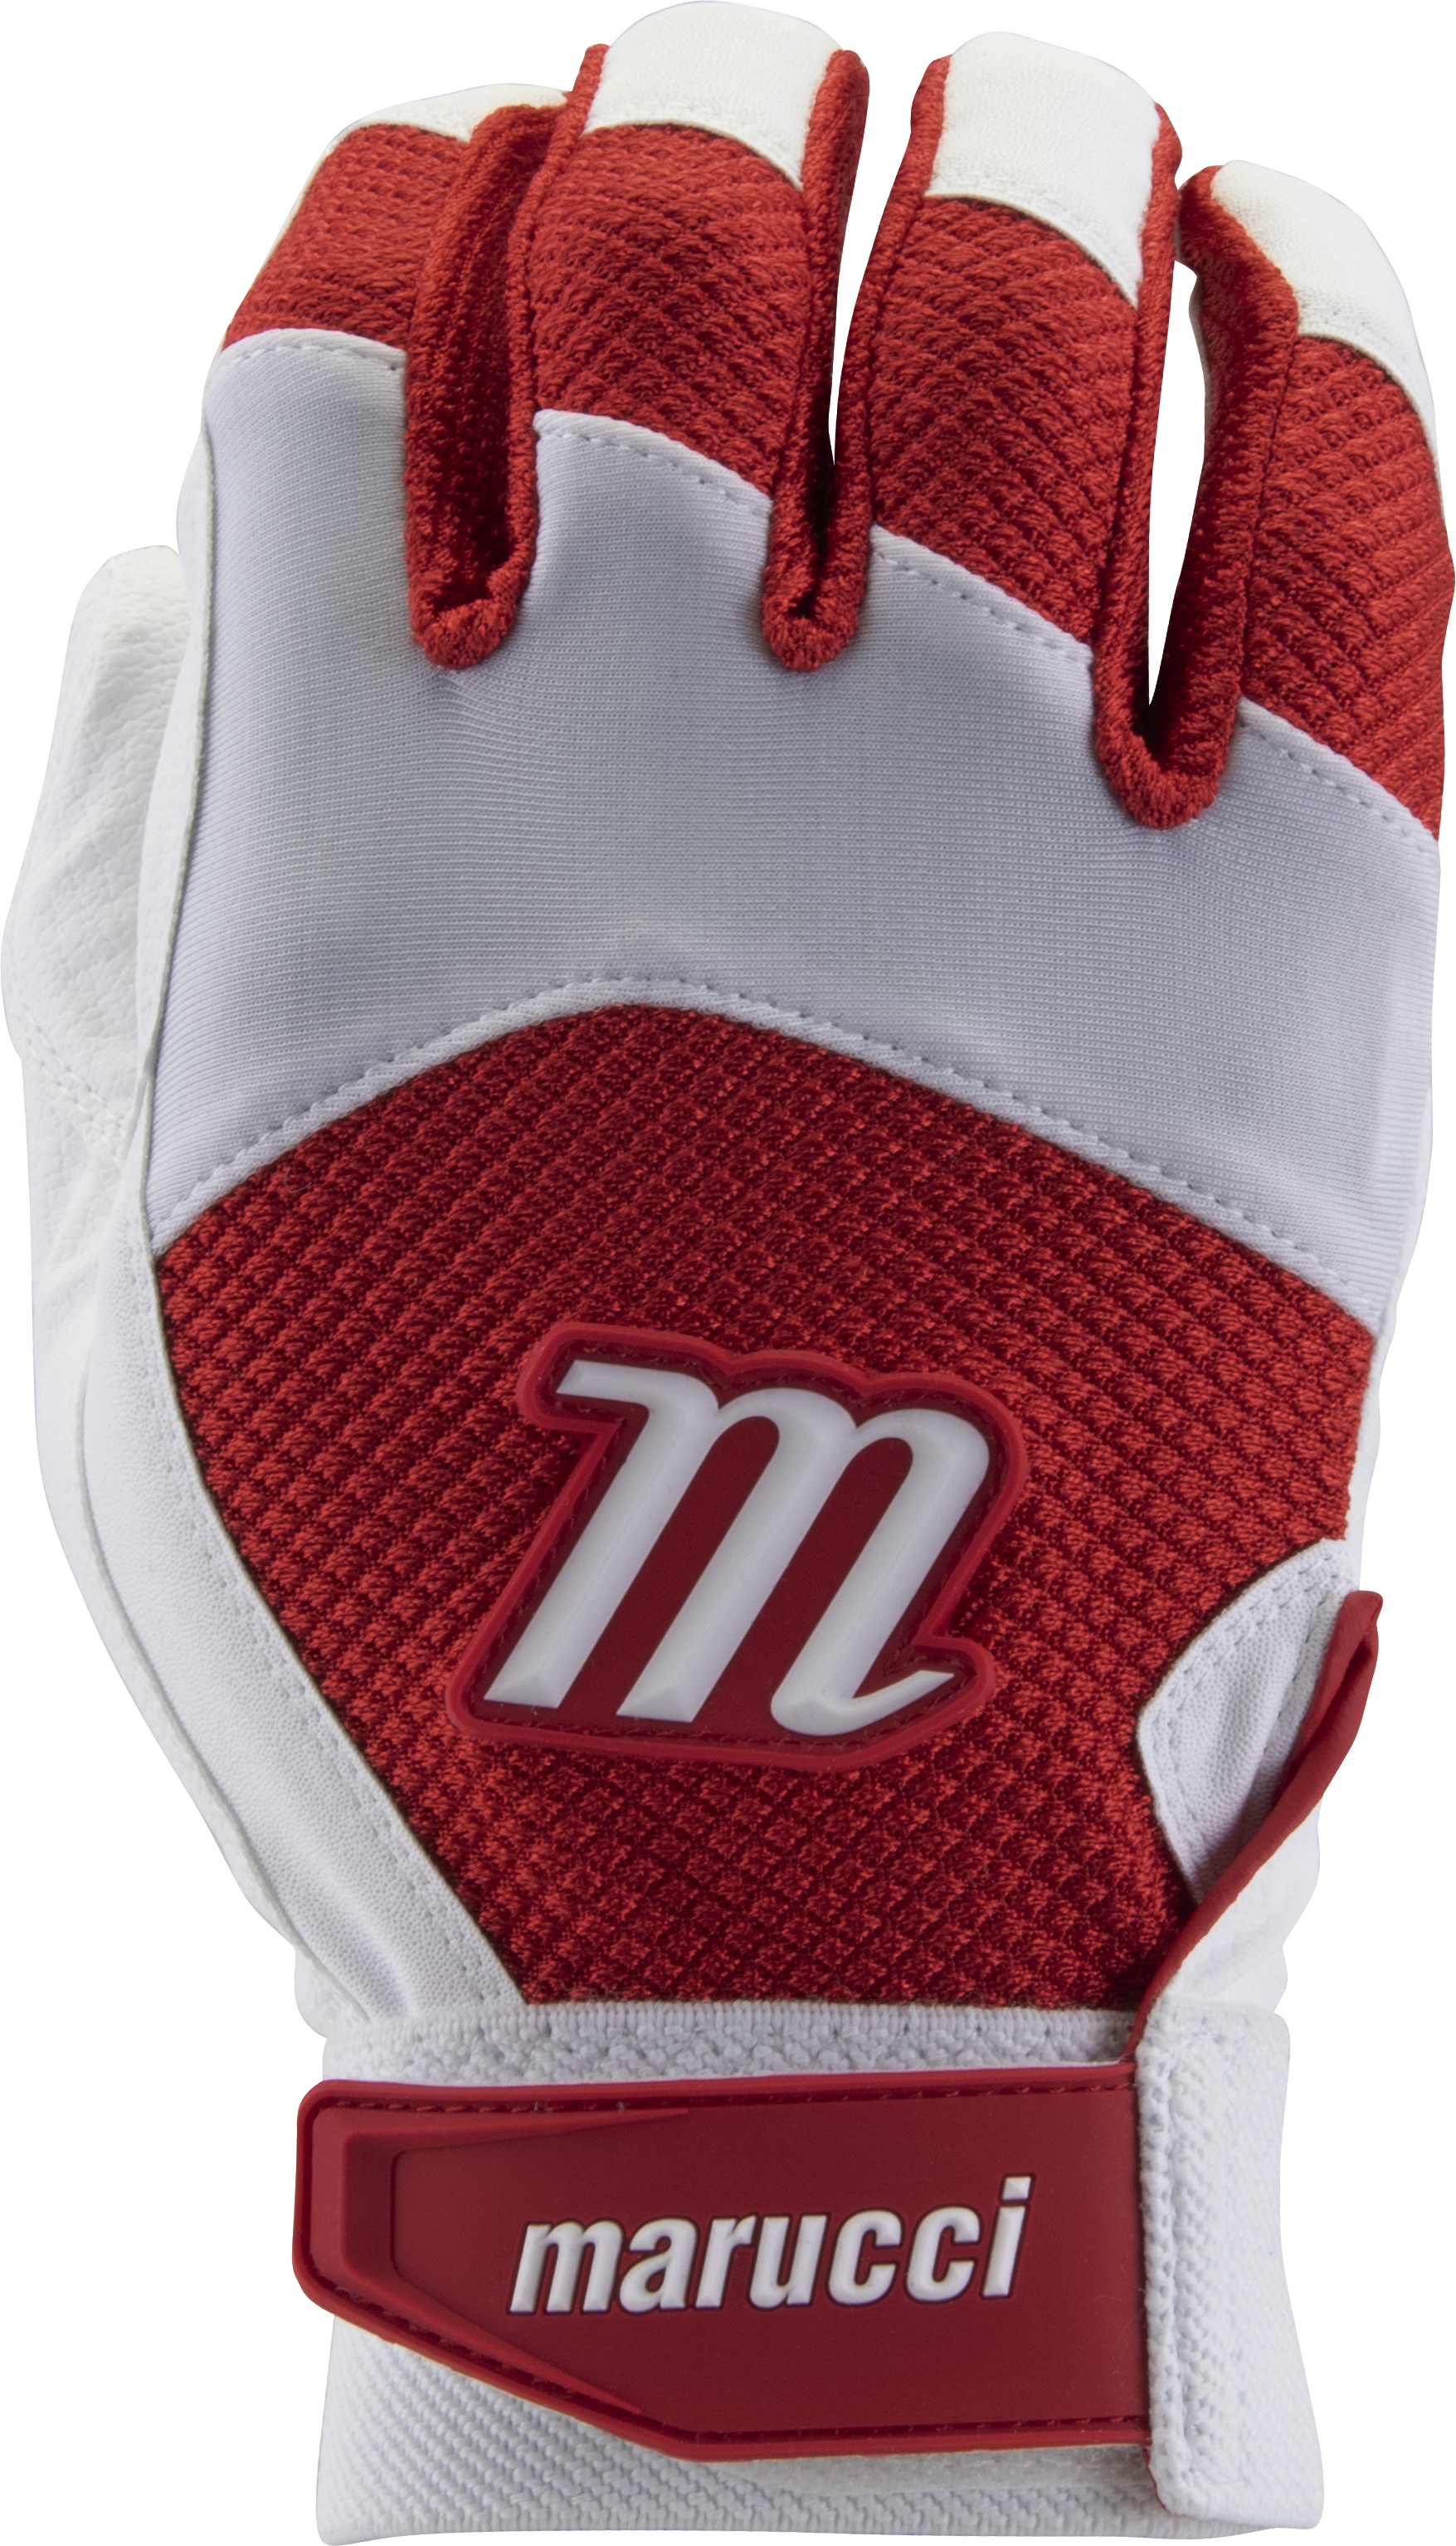 marucci-code-adult-batting-gloves-1-pair-white-red-adult-x-large MBGCD-WR-AXL Marucci 849817096093 2019 Model MBGCD Consistency And Craftsmanship Commitment To Quality And Understanding